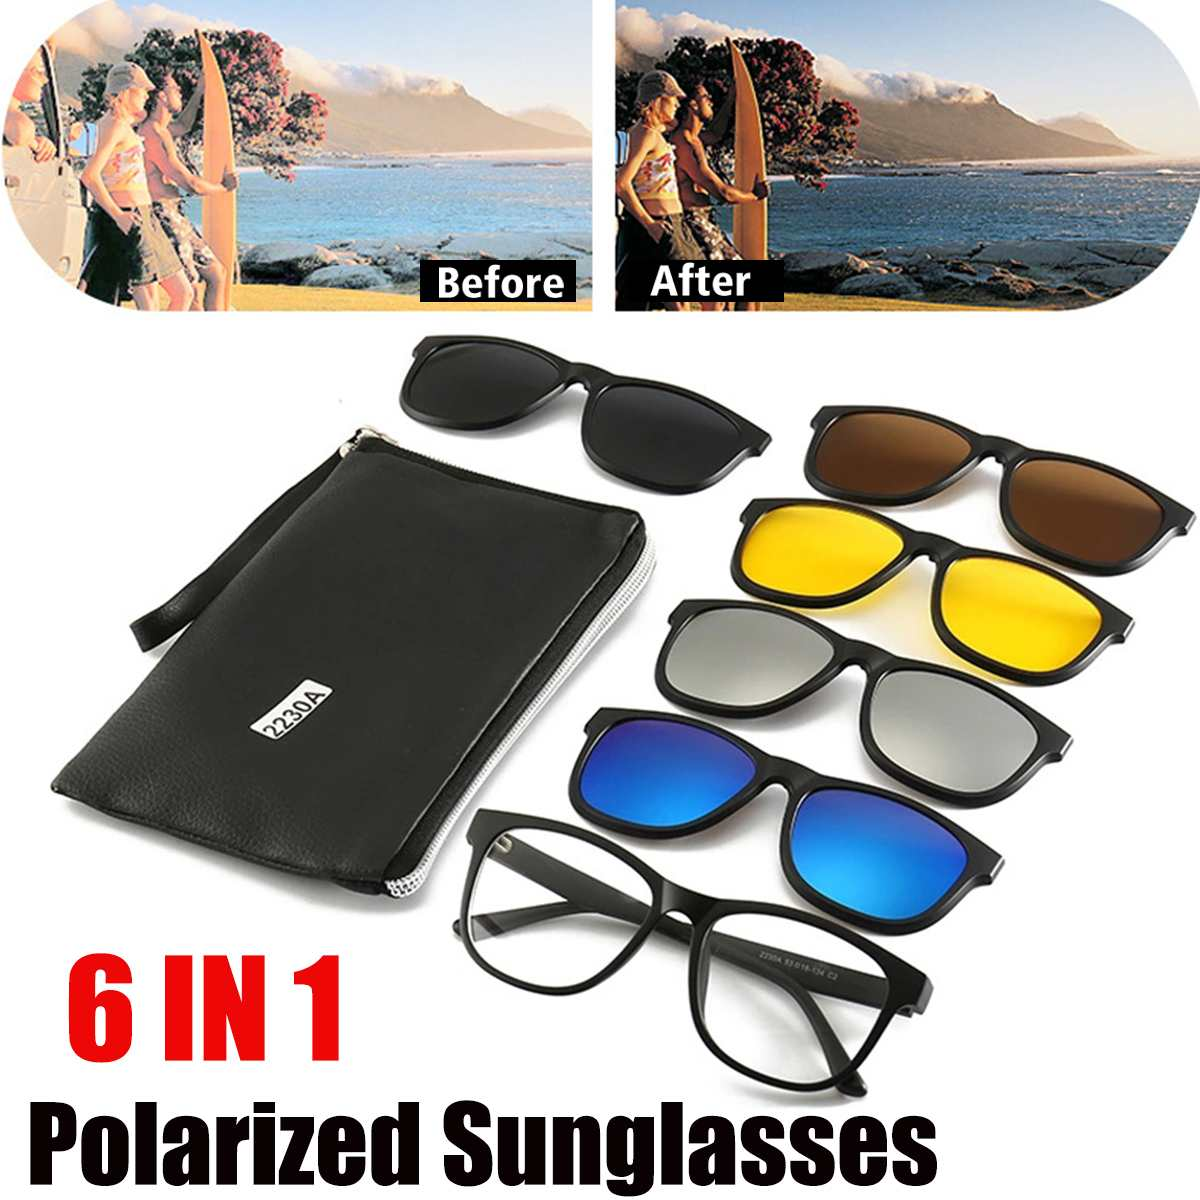 <font><b>6</b></font> <font><b>IN</b></font> <font><b>1</b></font> Night Vision Glasses Polarized <font><b>Sunglasses</b></font> Retro Frame Eyewear Night Vision Driving Optical Glasses With Carry Bag 2230A image